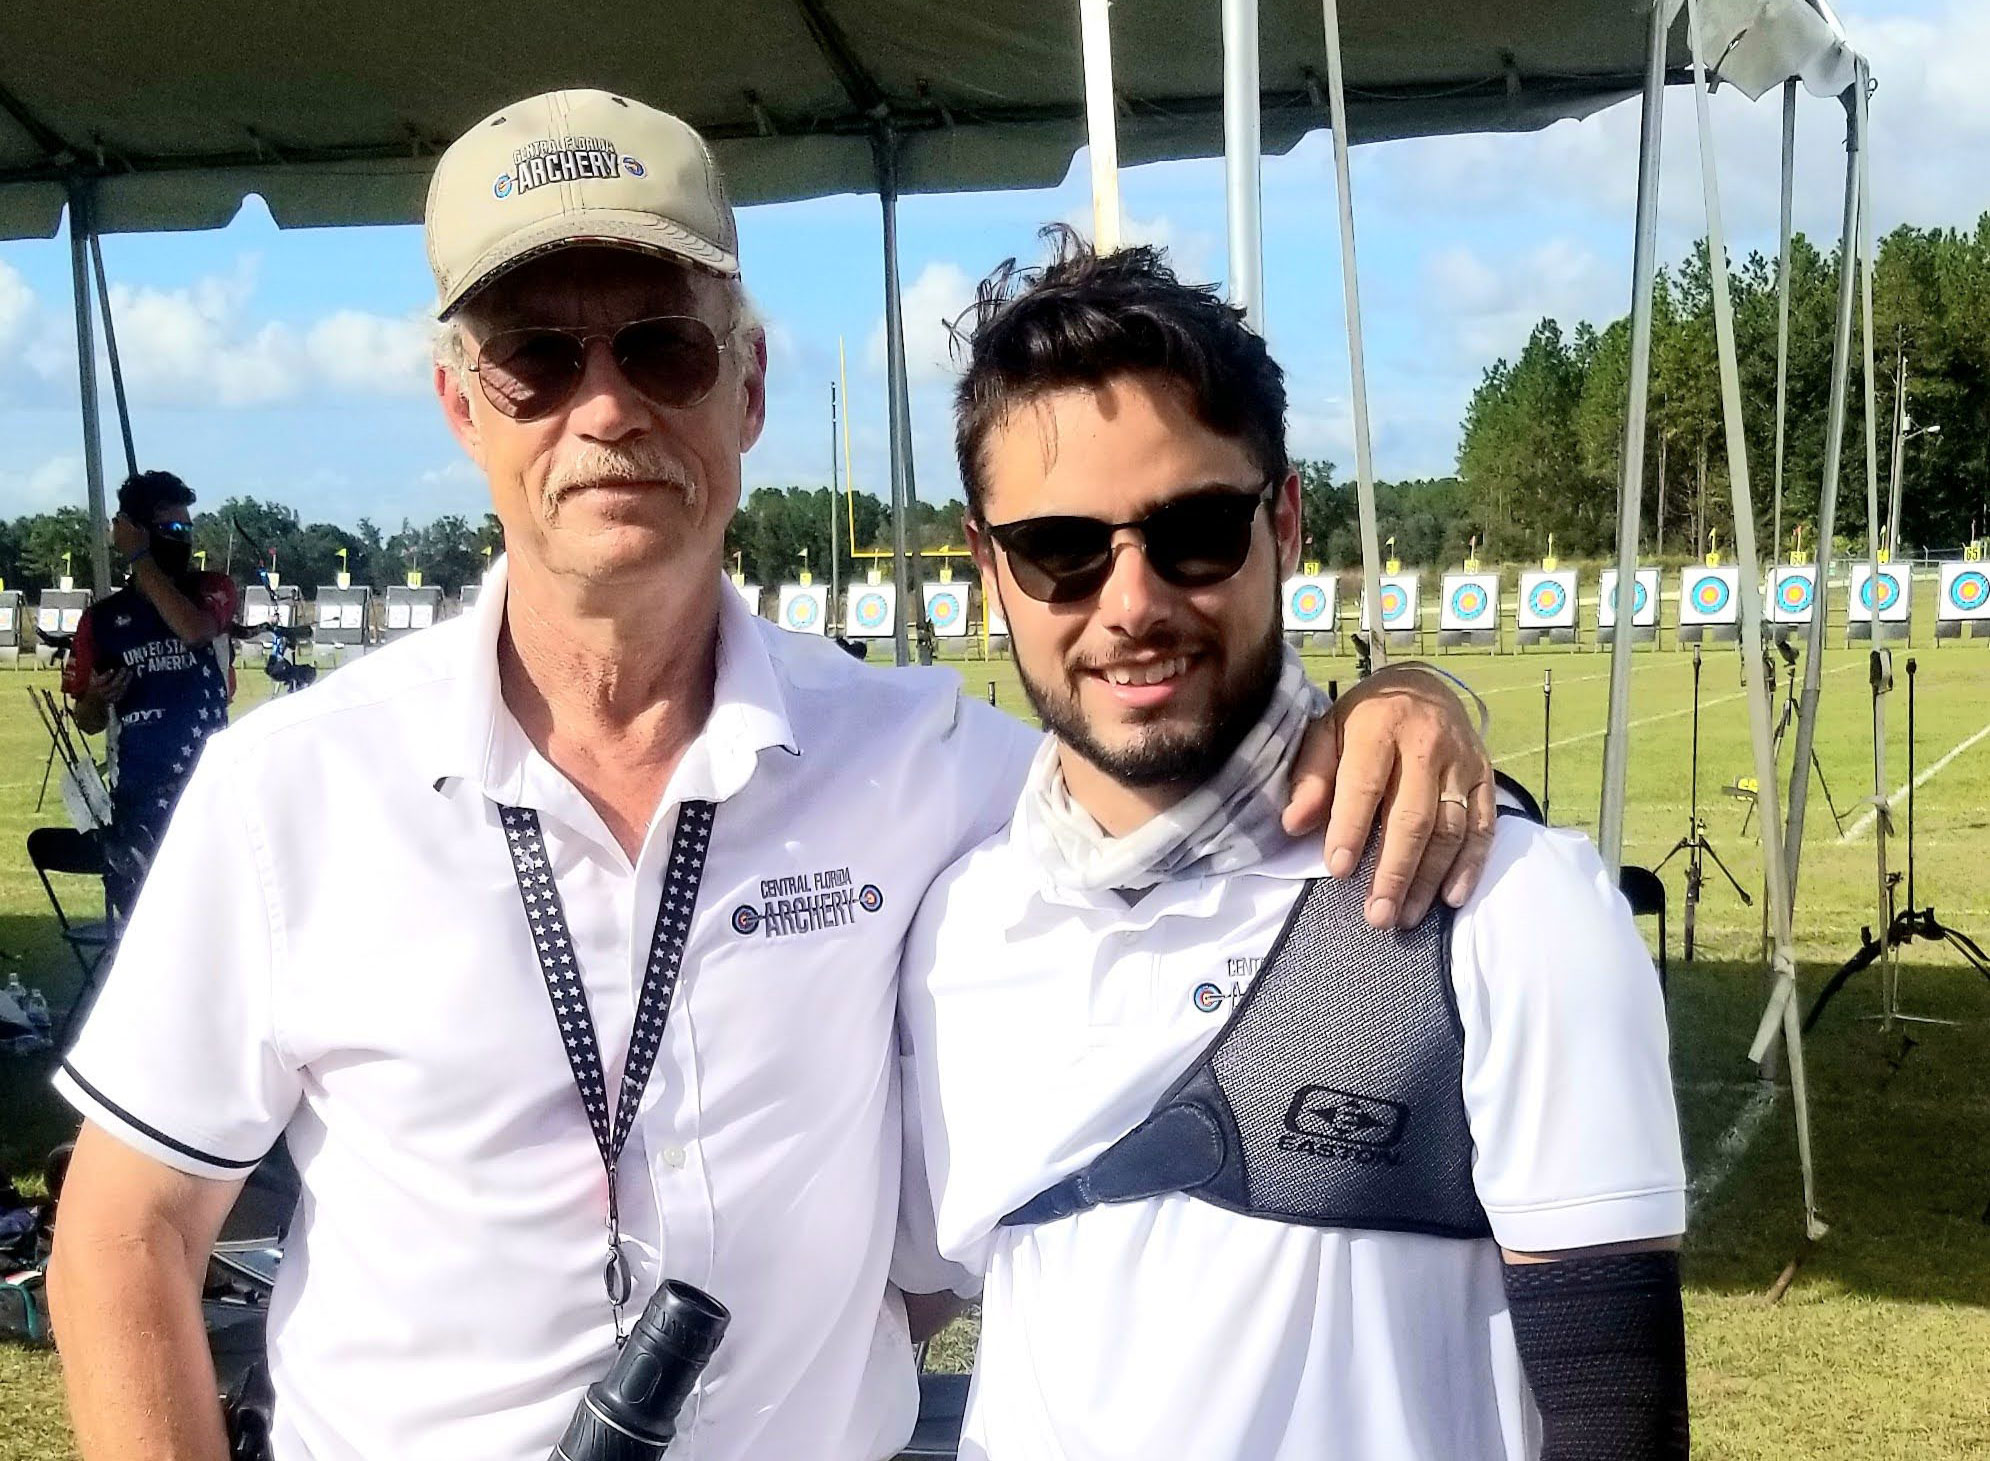 Phoenix earns national archery ranking and advances Olympic goals